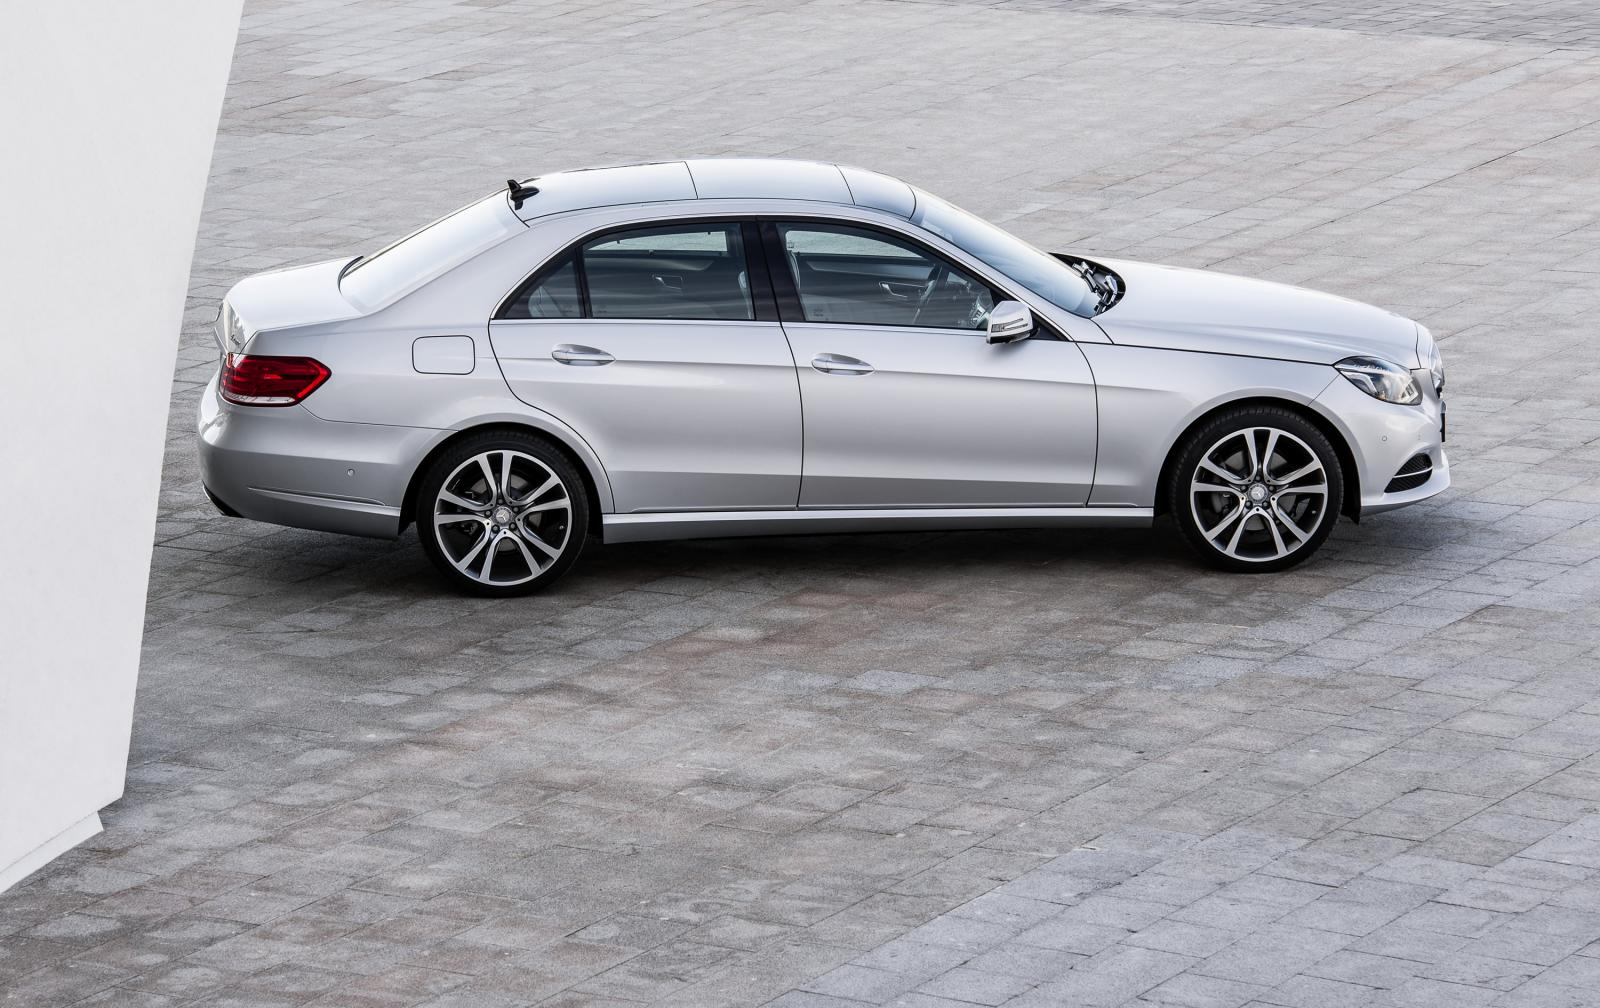 Updated 2014 mercedes benz e class photos and details for 2014 e class mercedes benz